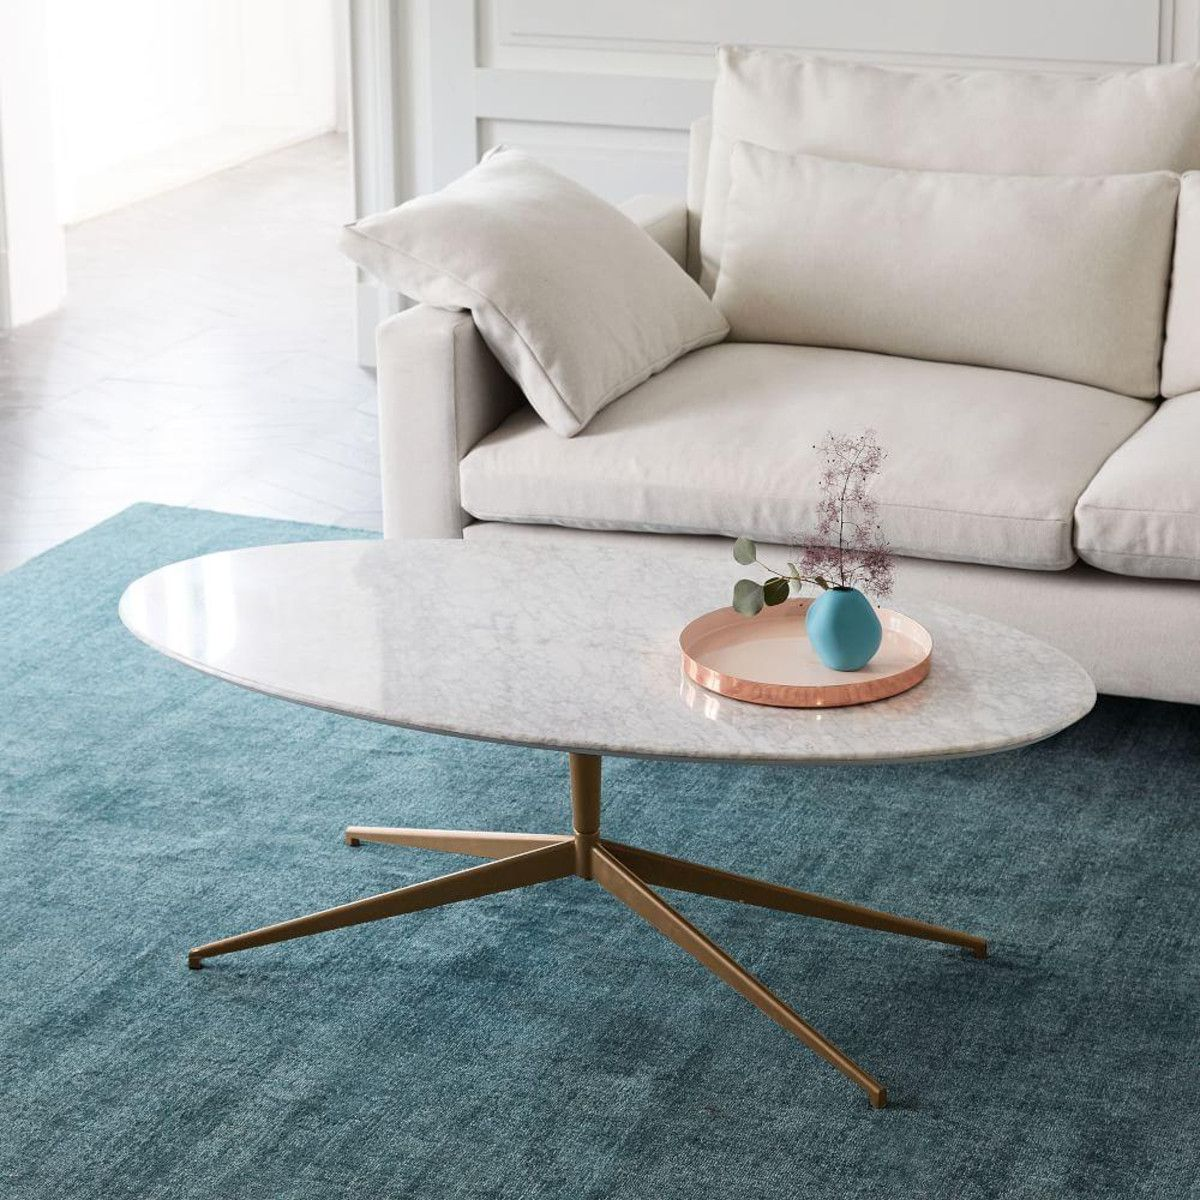 Marble Top Coffee Table Canada: Mid-Century Oval Pedestal Coffee Table